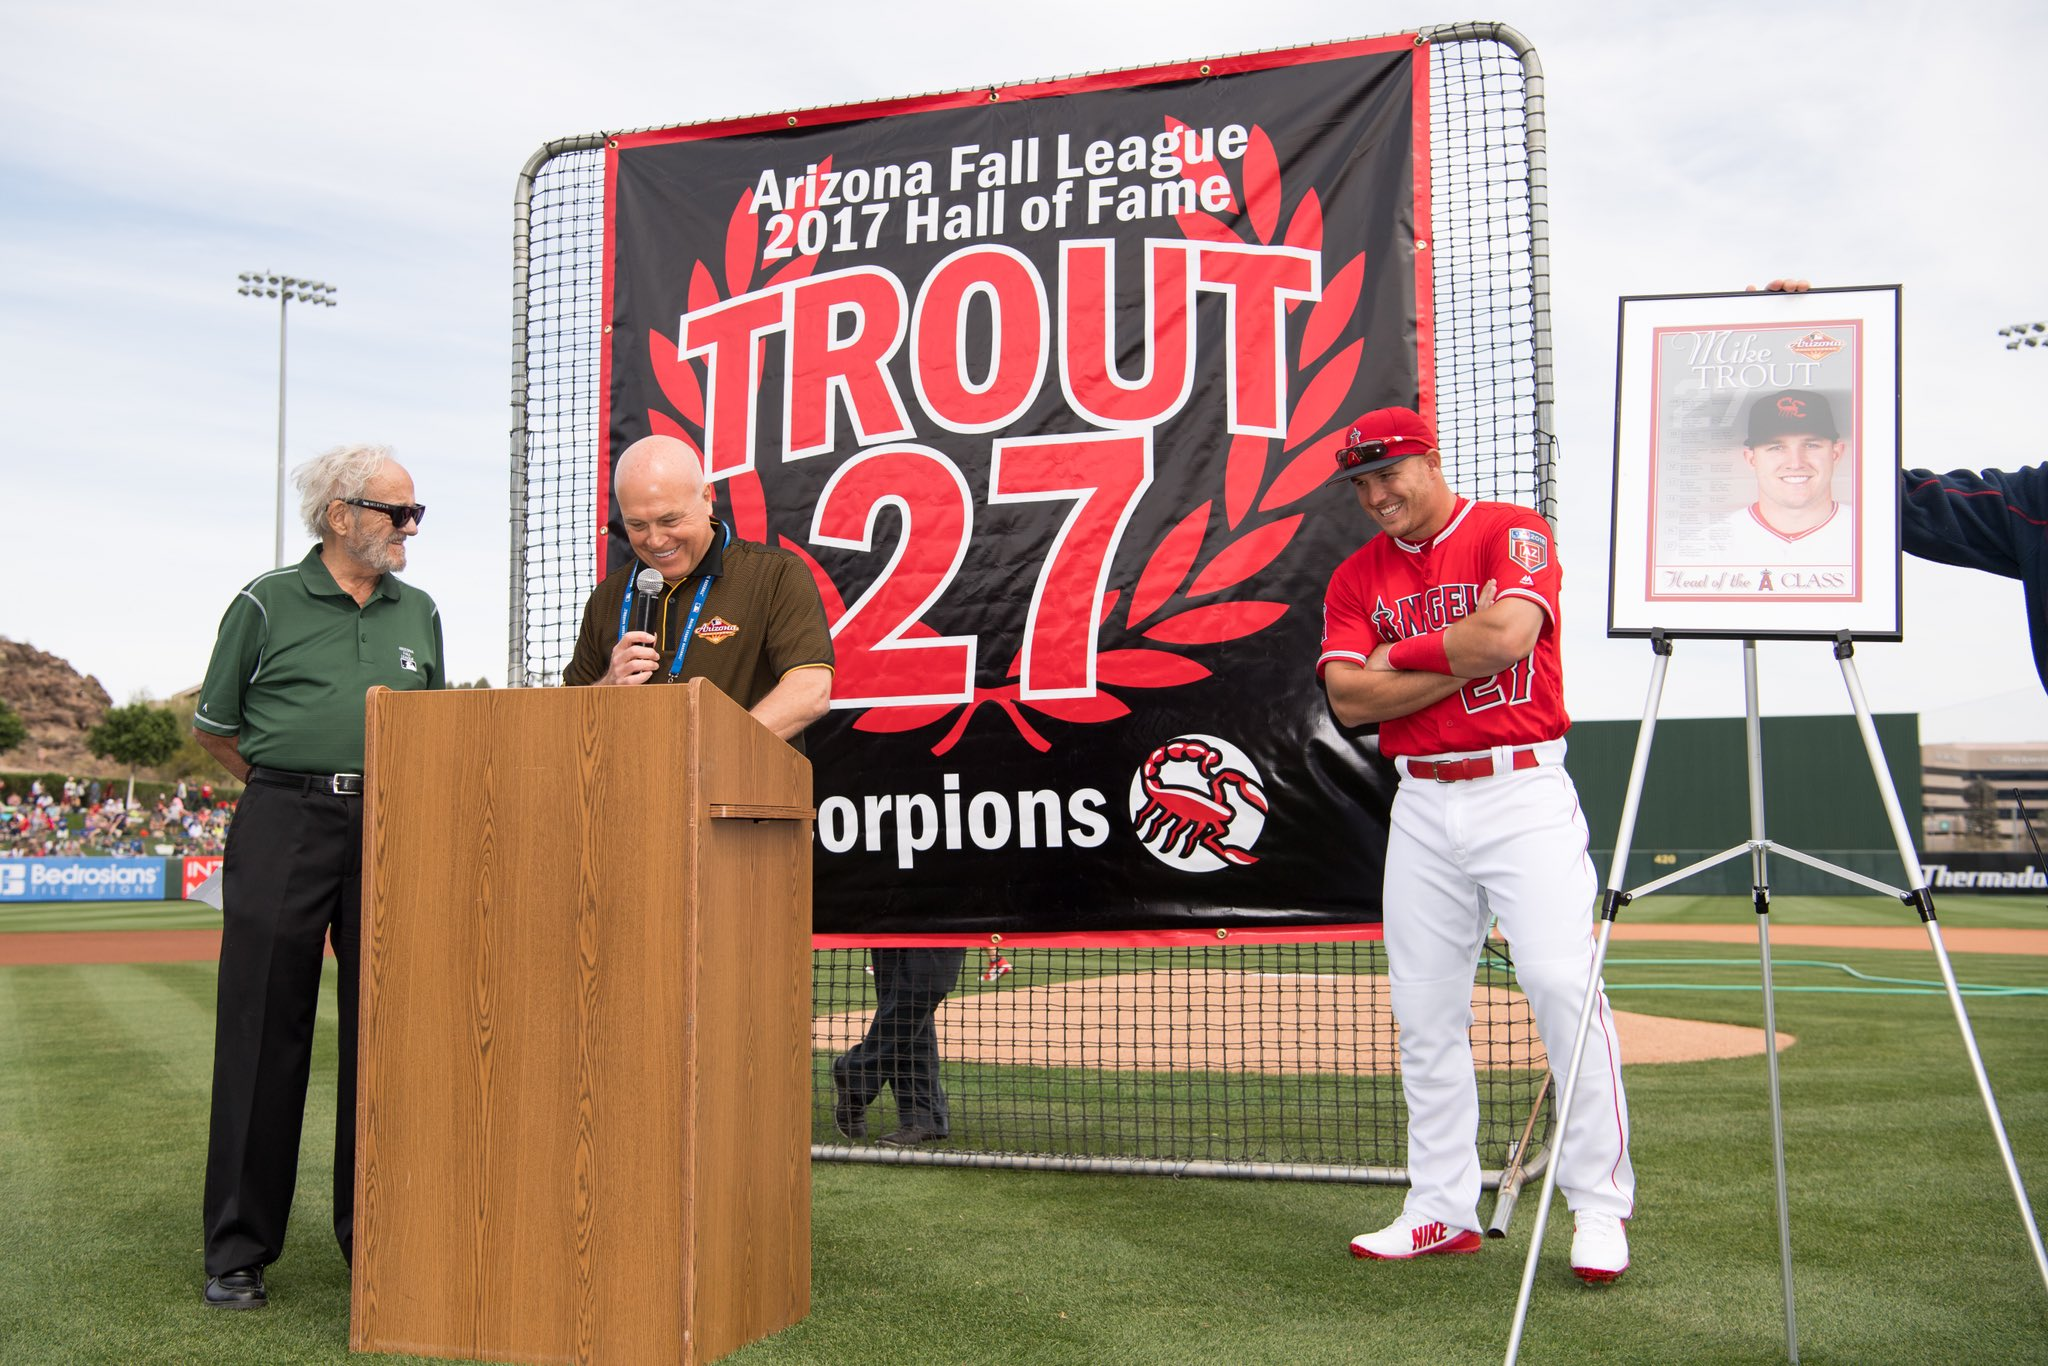 Congrats to 2017 @MLBazFallLeague Hall of Fame Inductee, @MikeTrout!  Have any more room on your mantel? https://t.co/VZzyuXJBSA